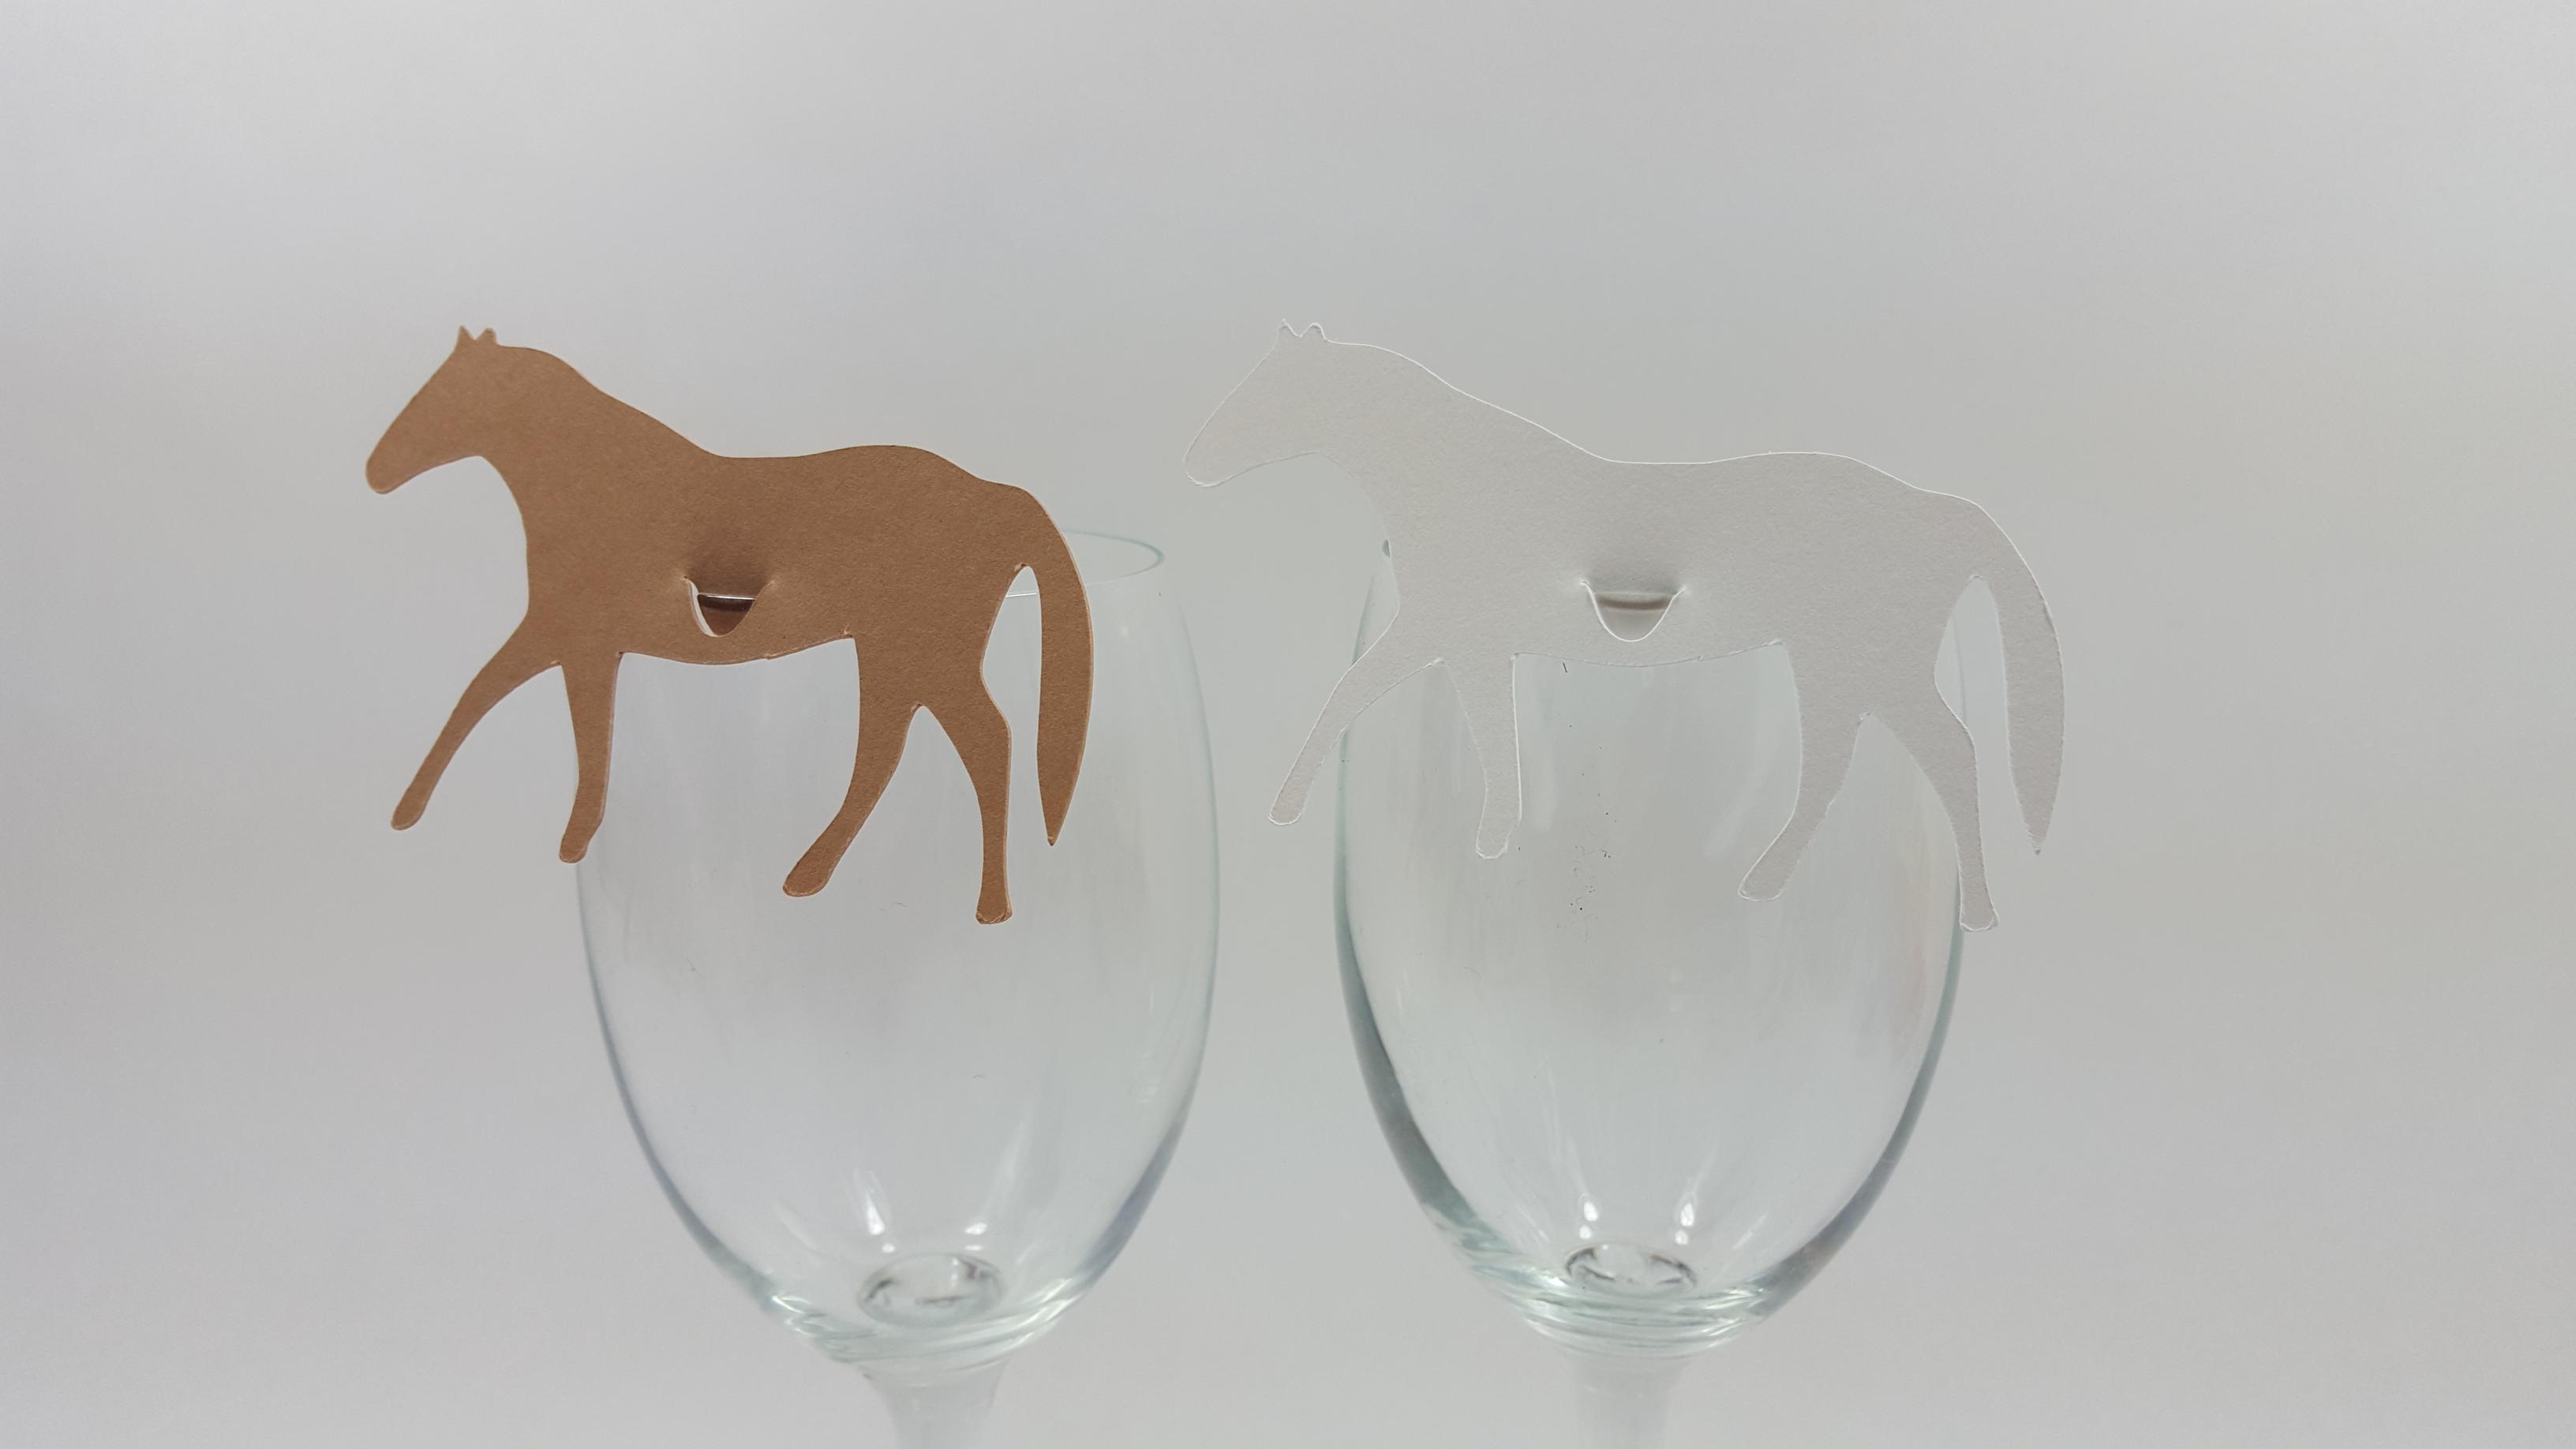 Horse wine glass place cards on wine glasses